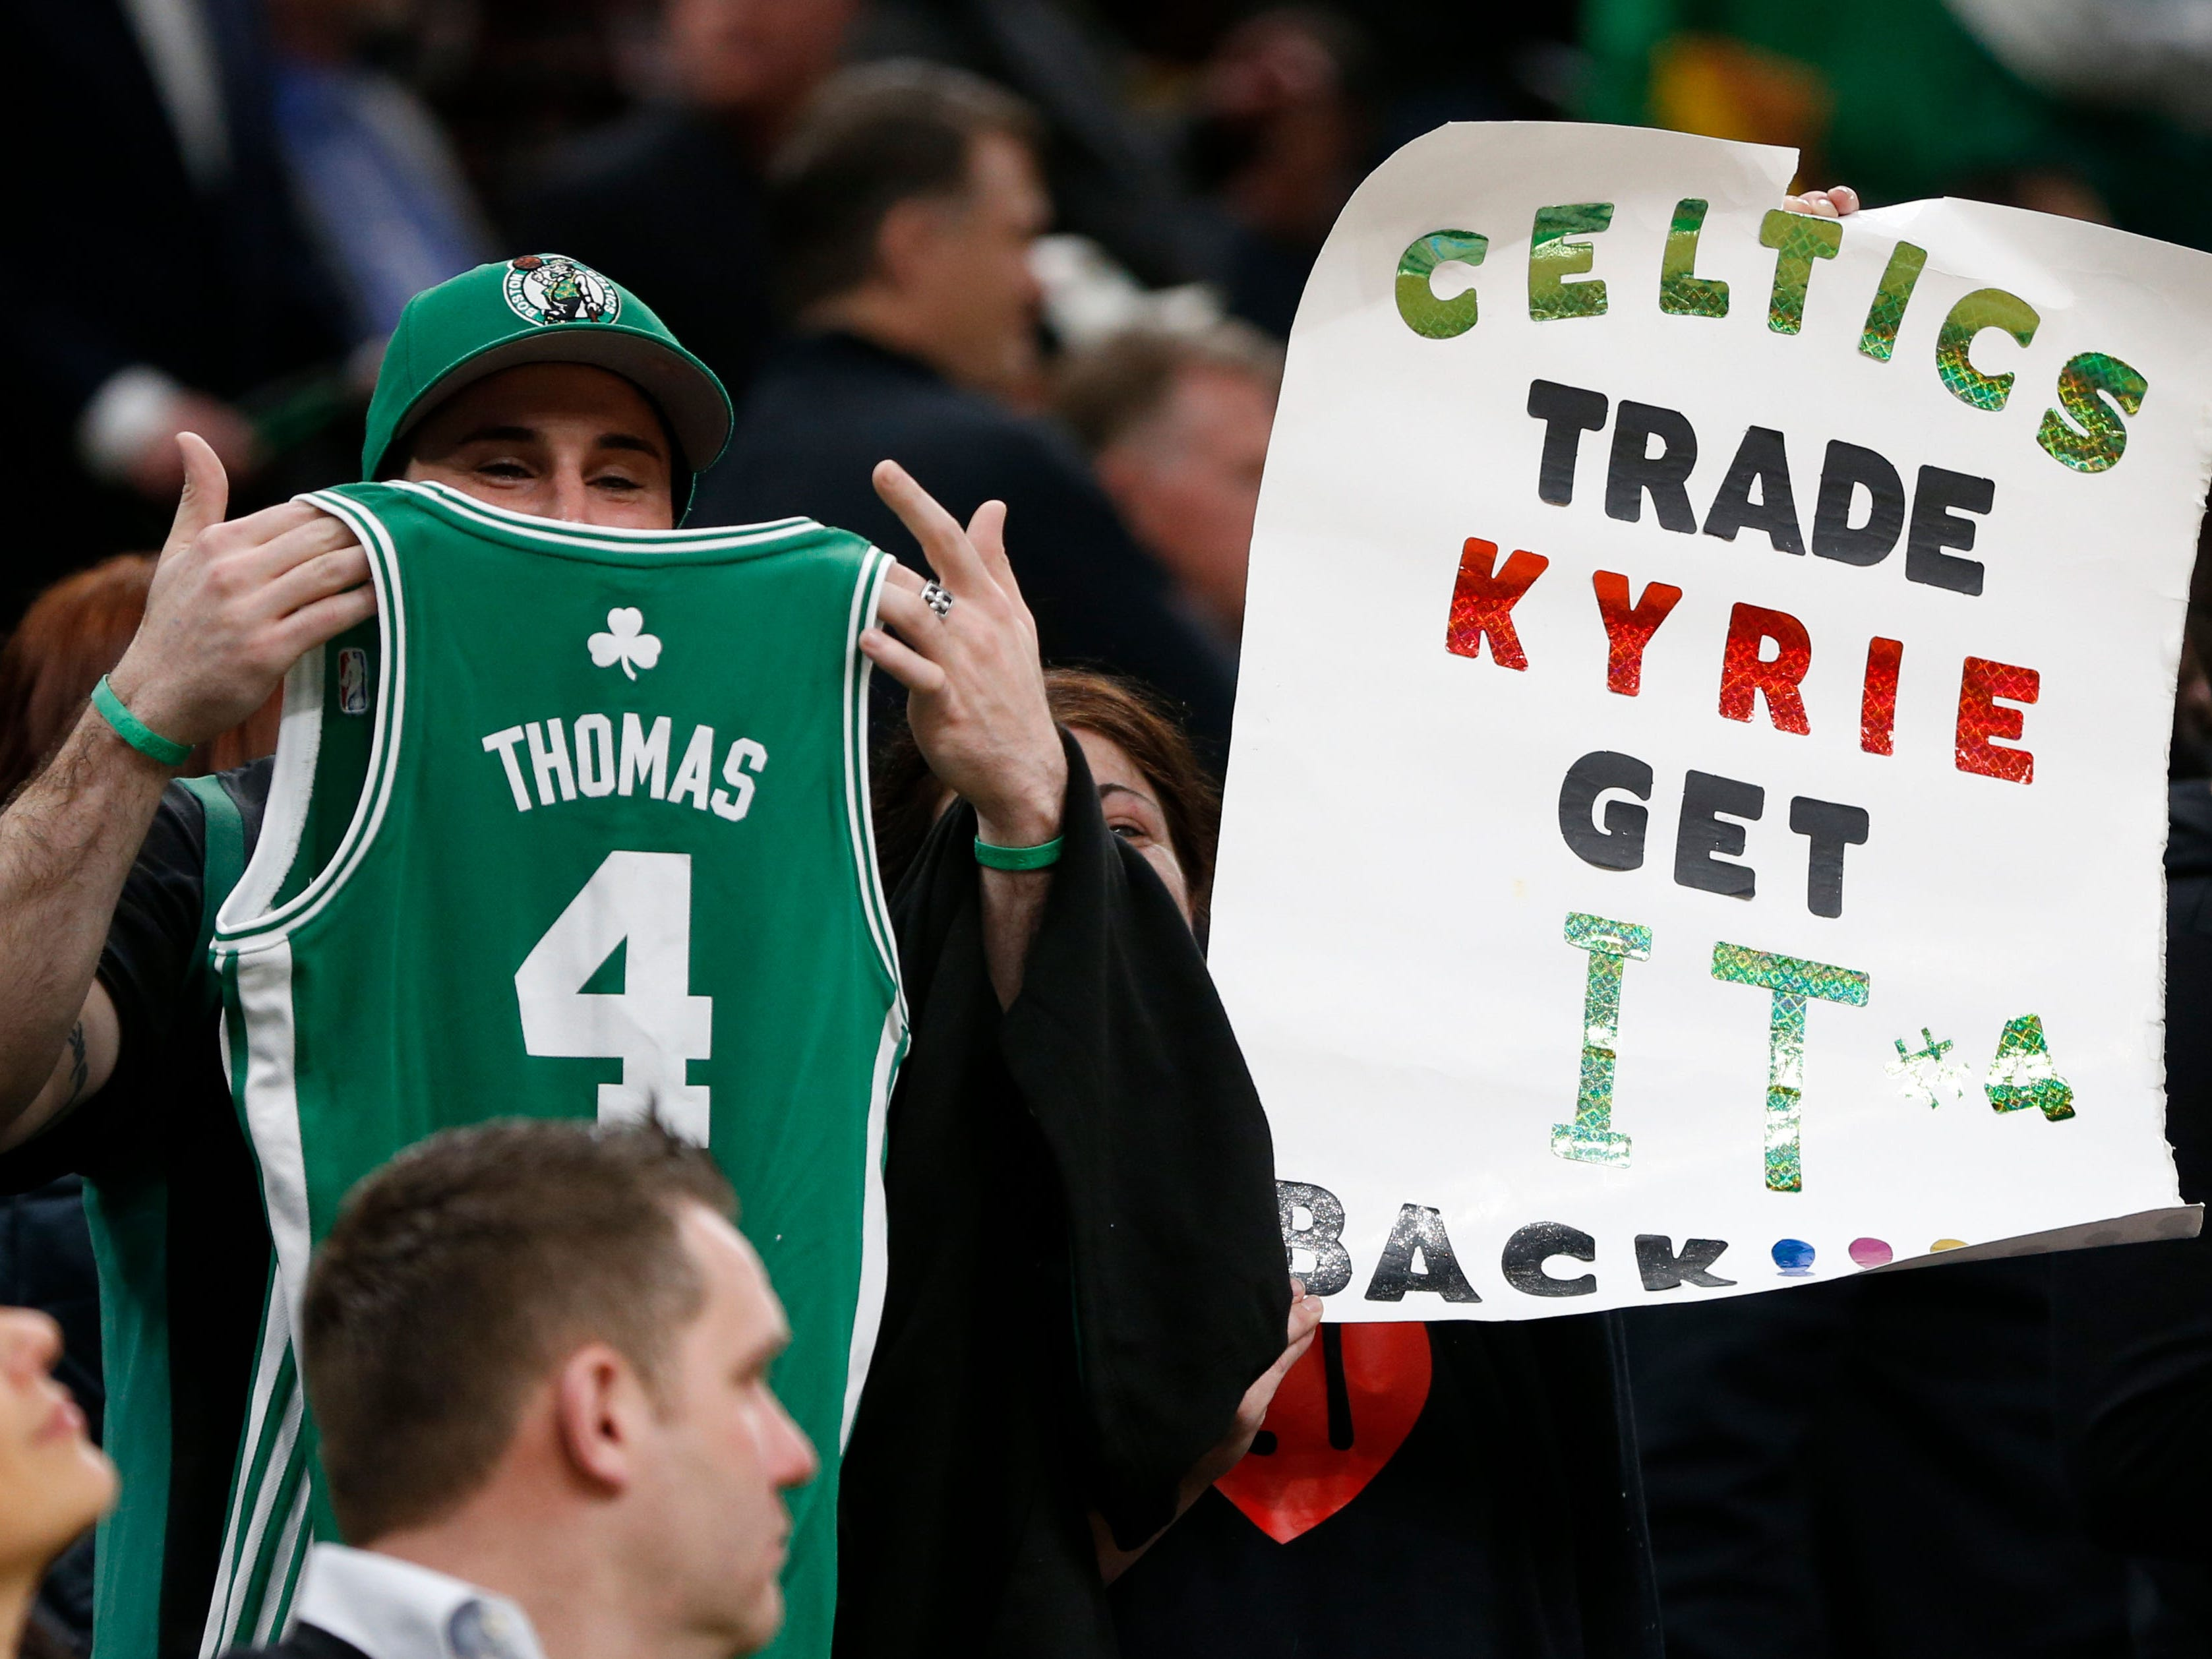 March 18: Boston fans welcomed back Isaiah Thomas for his game at TD Garden since being traded by the Celtics before last season.